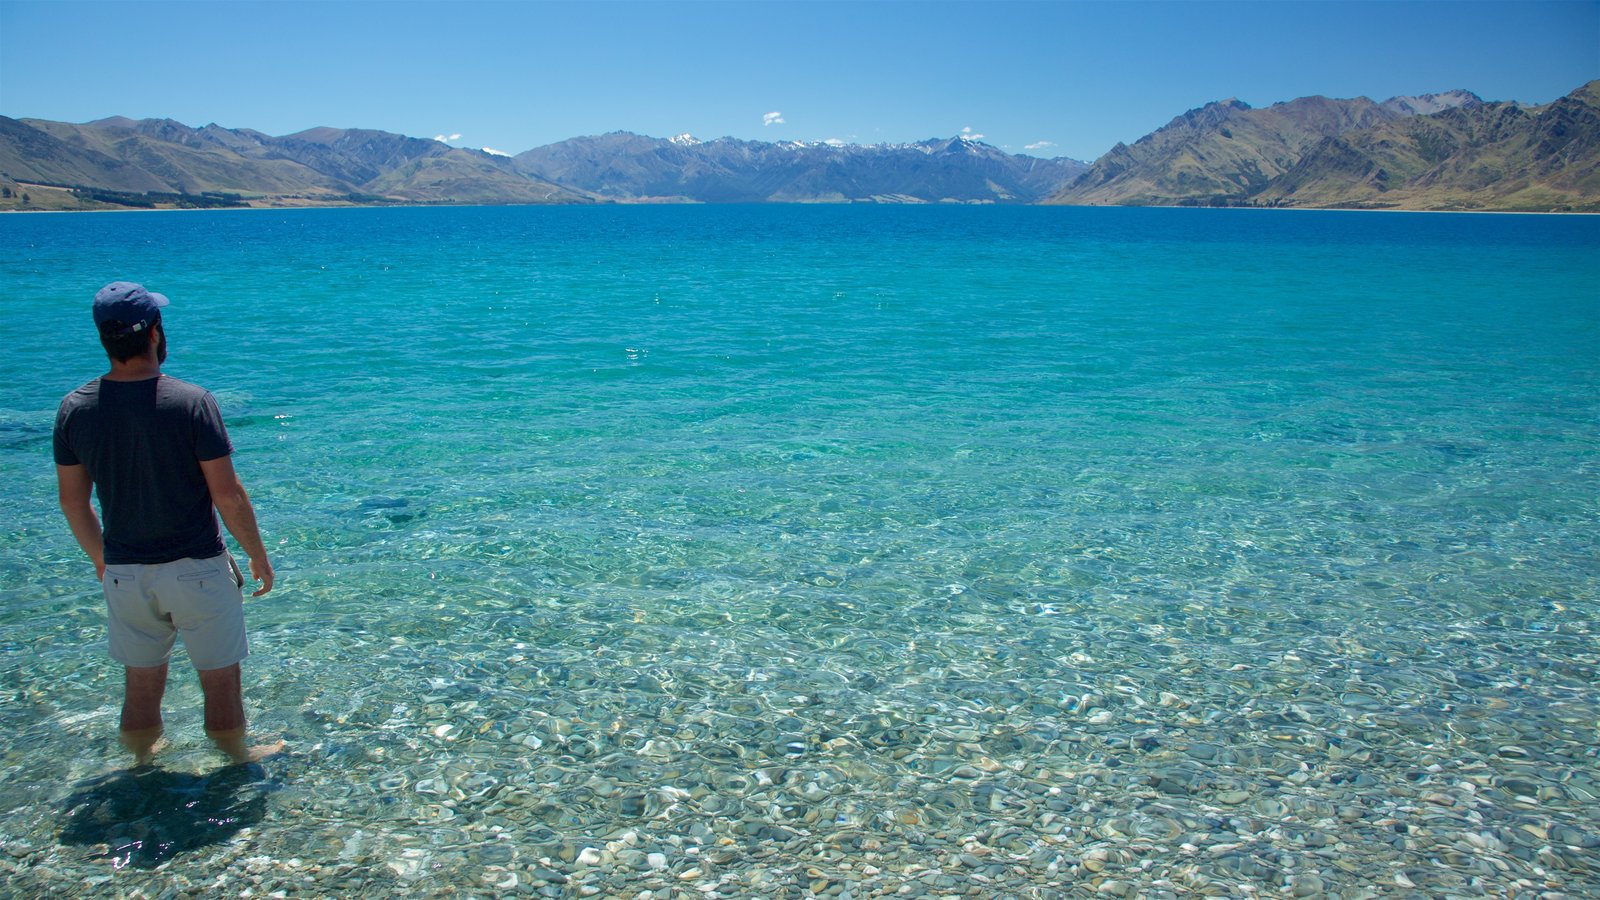 Lake Hawea showing a lake or waterhole, a pebble beach and mountains